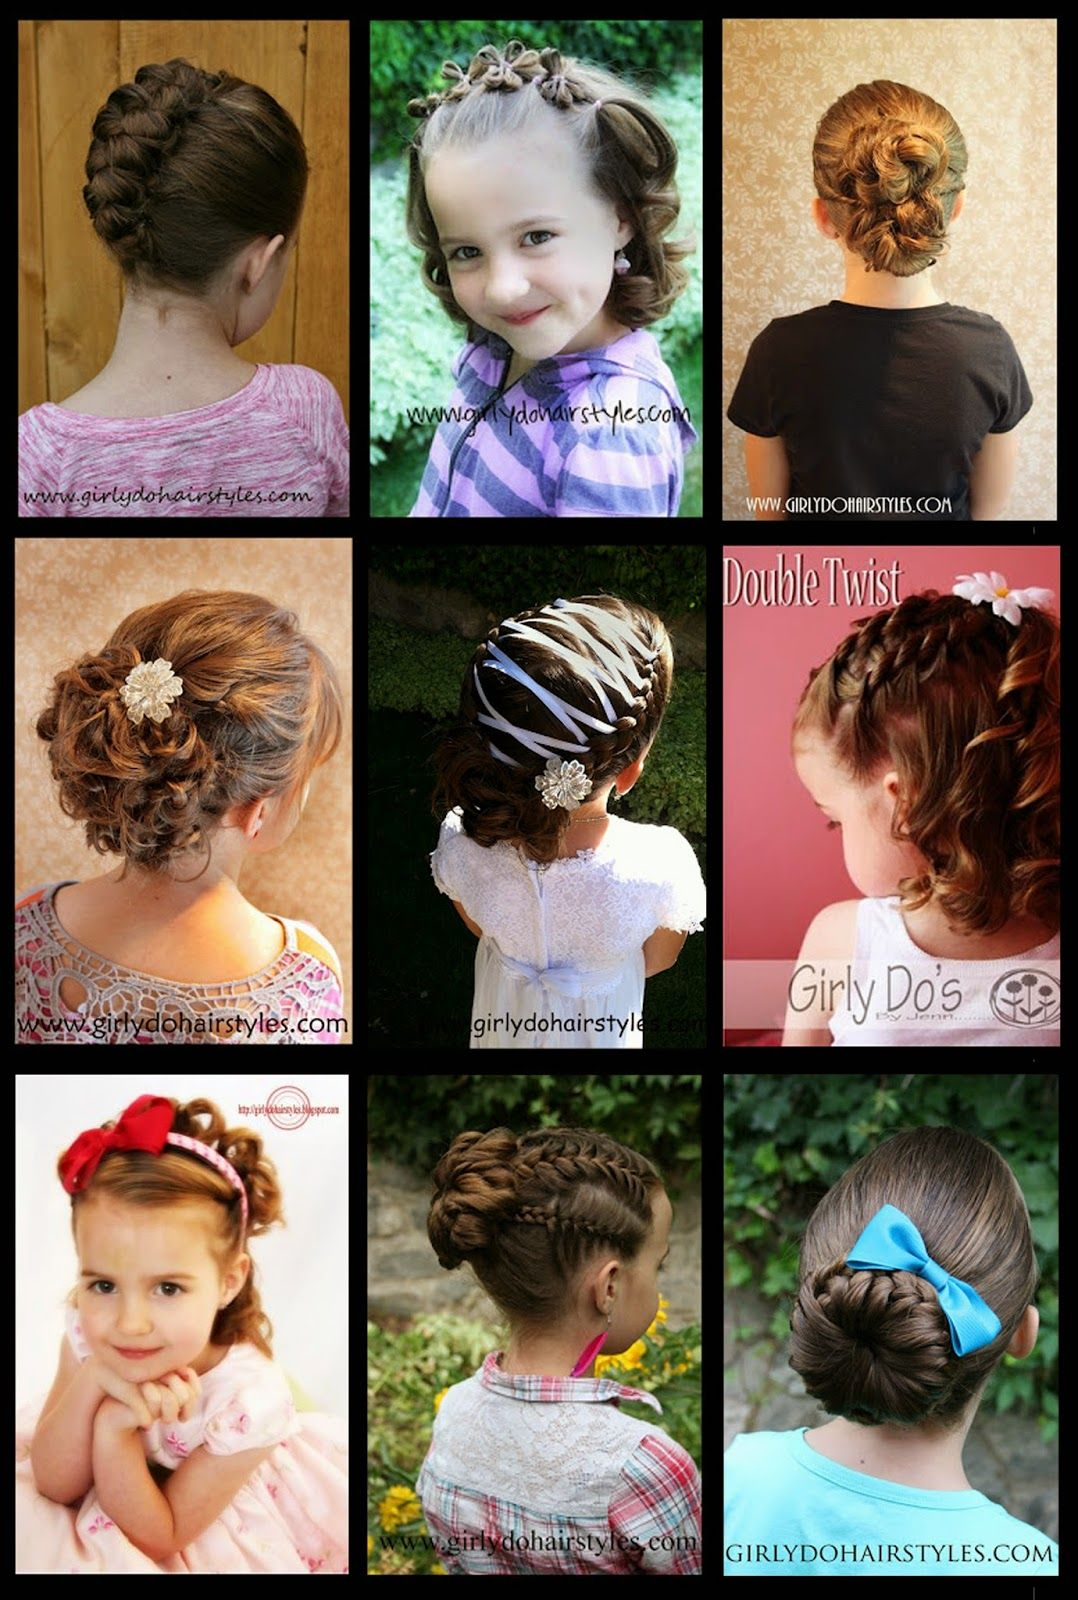 Girly do hairstyles by jenn easter hairstyles ideaus easter